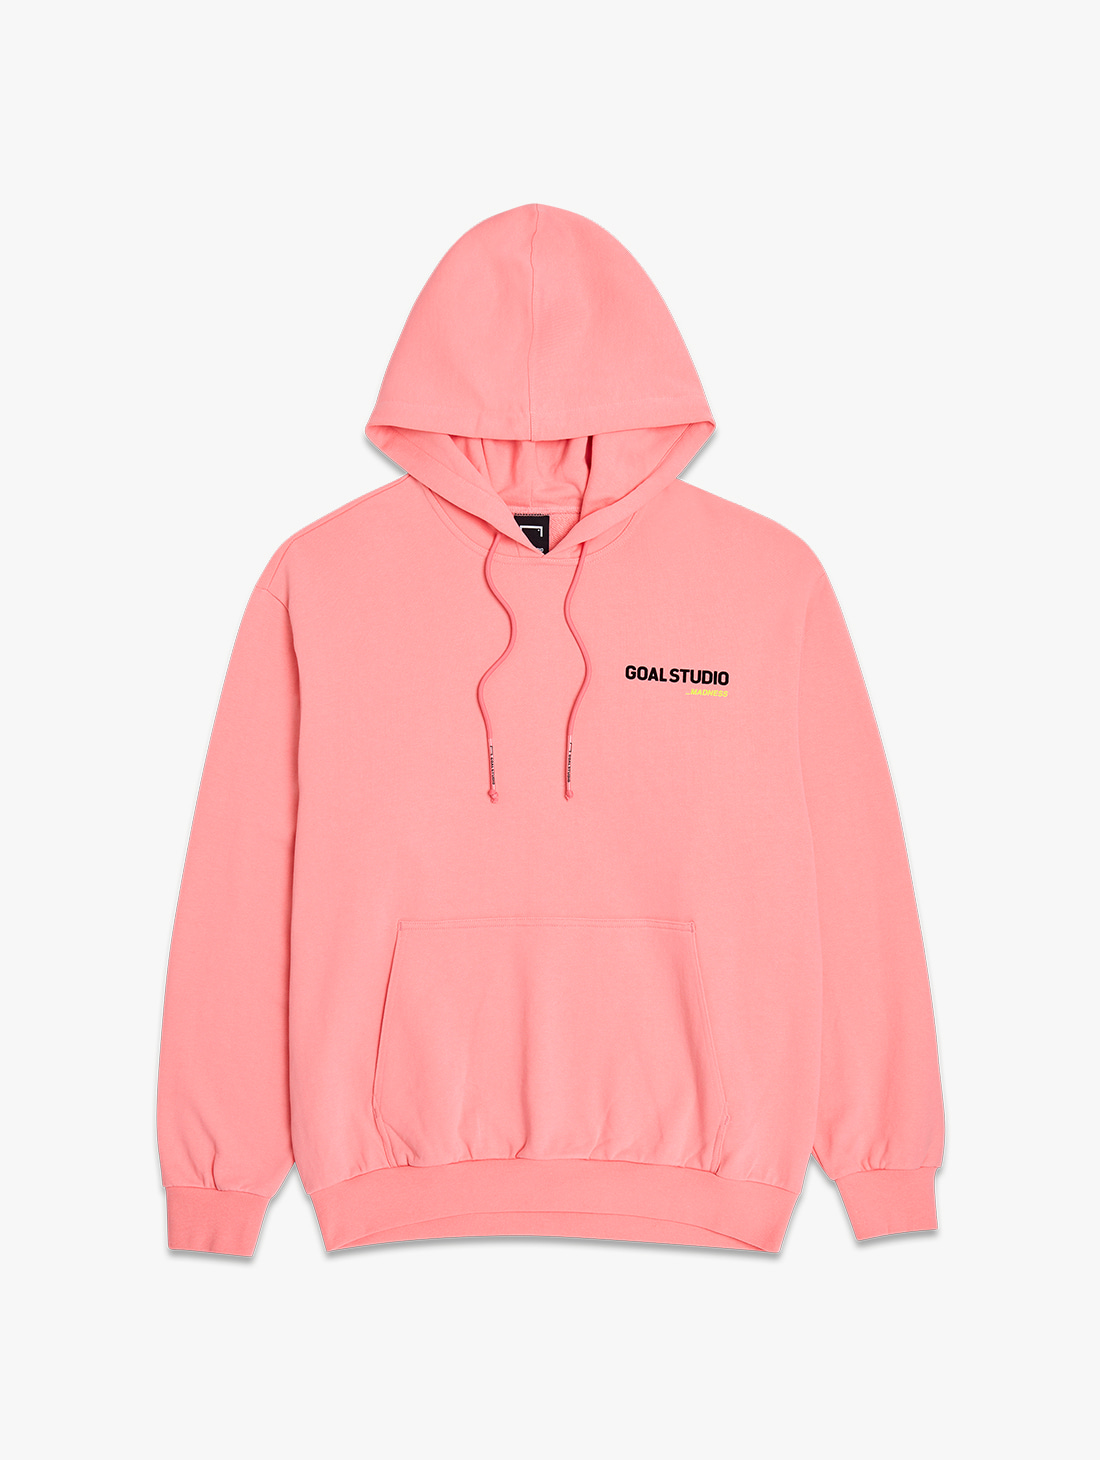 MADNESS HOODIE (3 Colors)